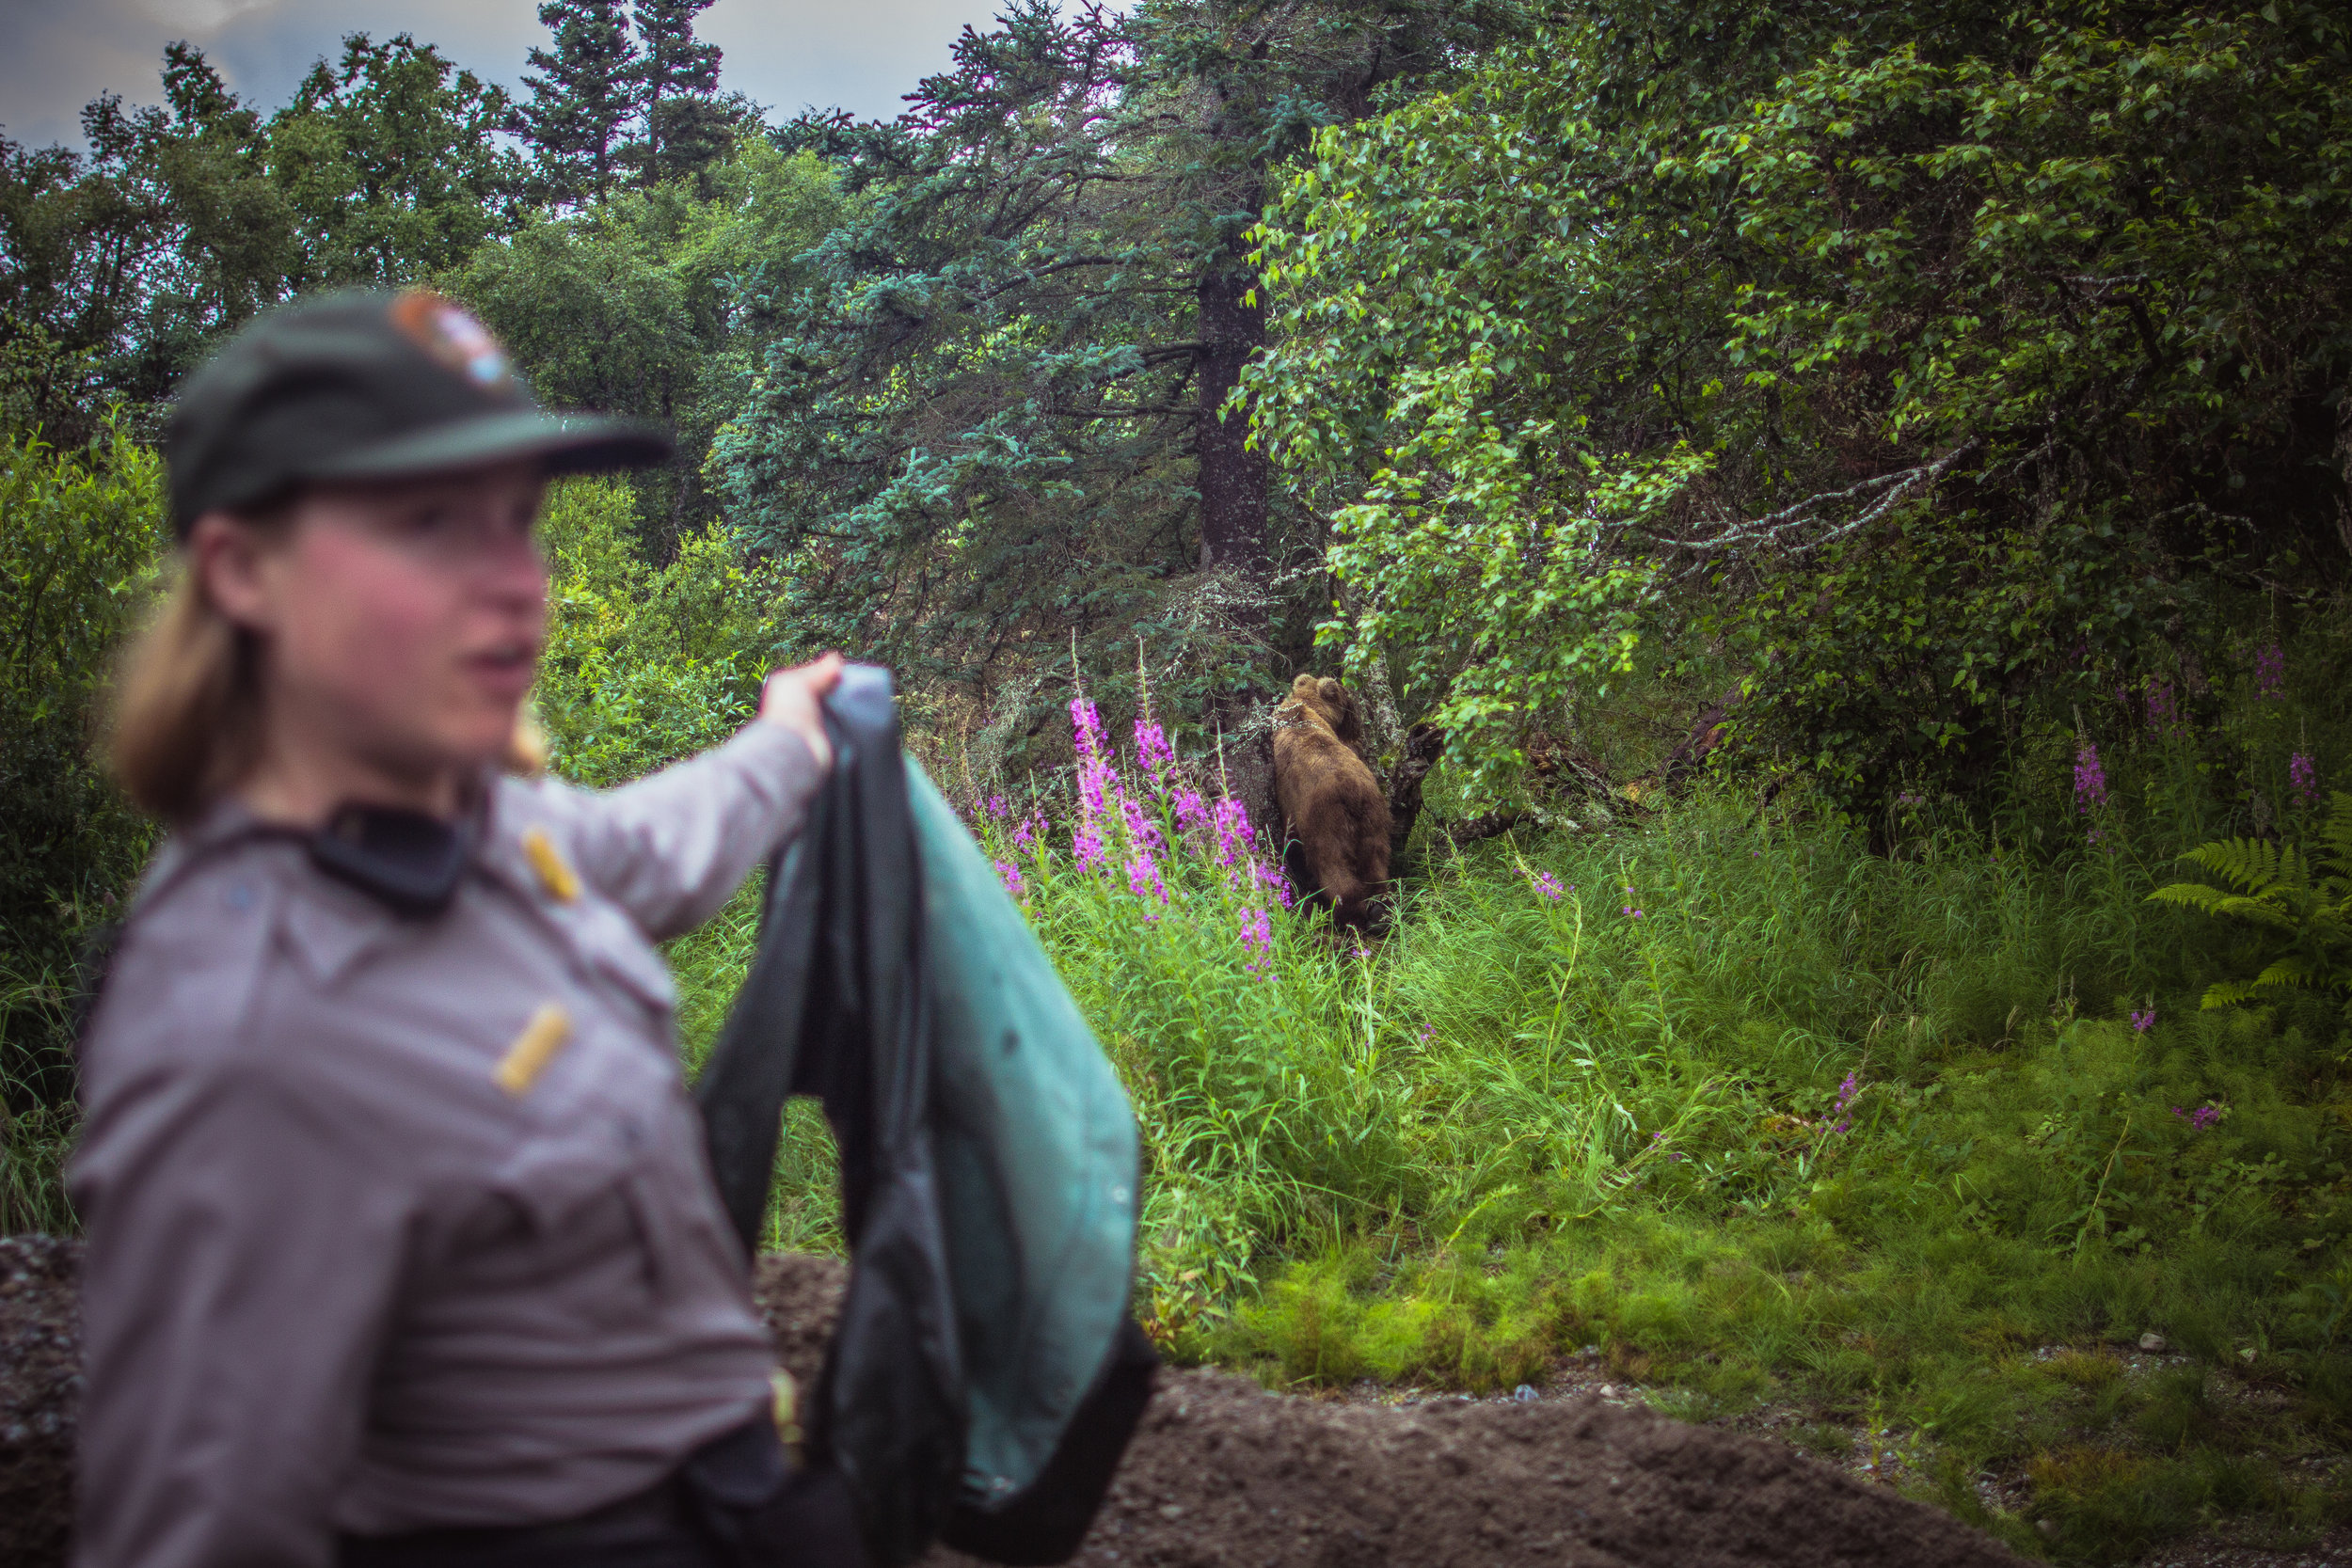 Often the Bear Techs find that the sounds of breaking sticks or rustling a raincoat are more effective at hazing the bears than yelling or clapping.